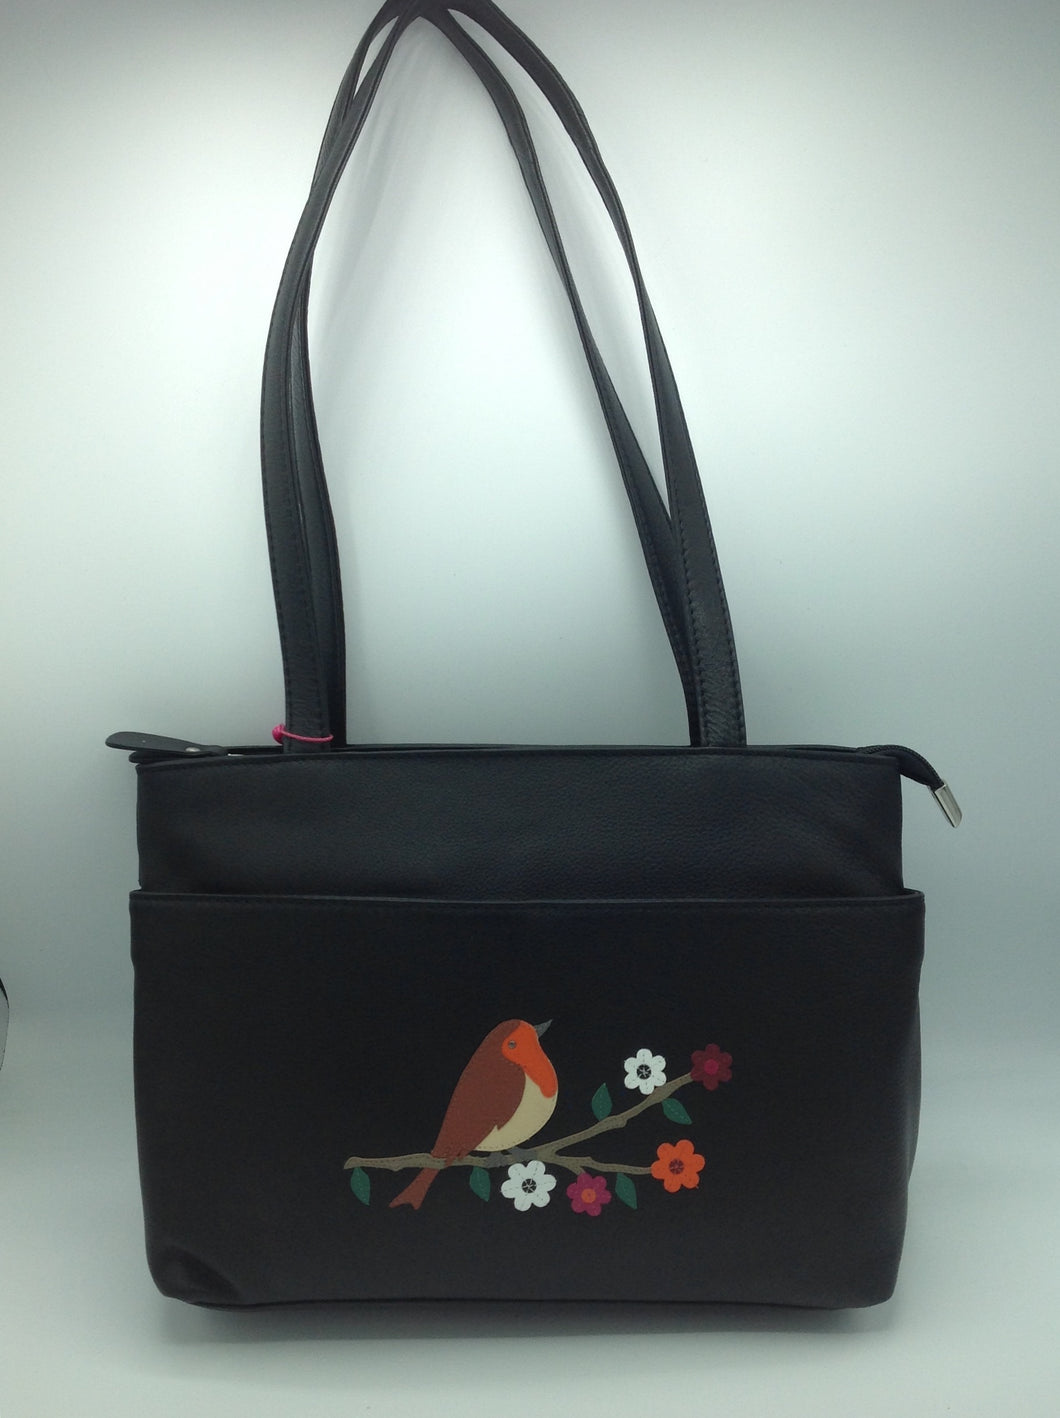 Mala Leather Handbag with Robin Motif